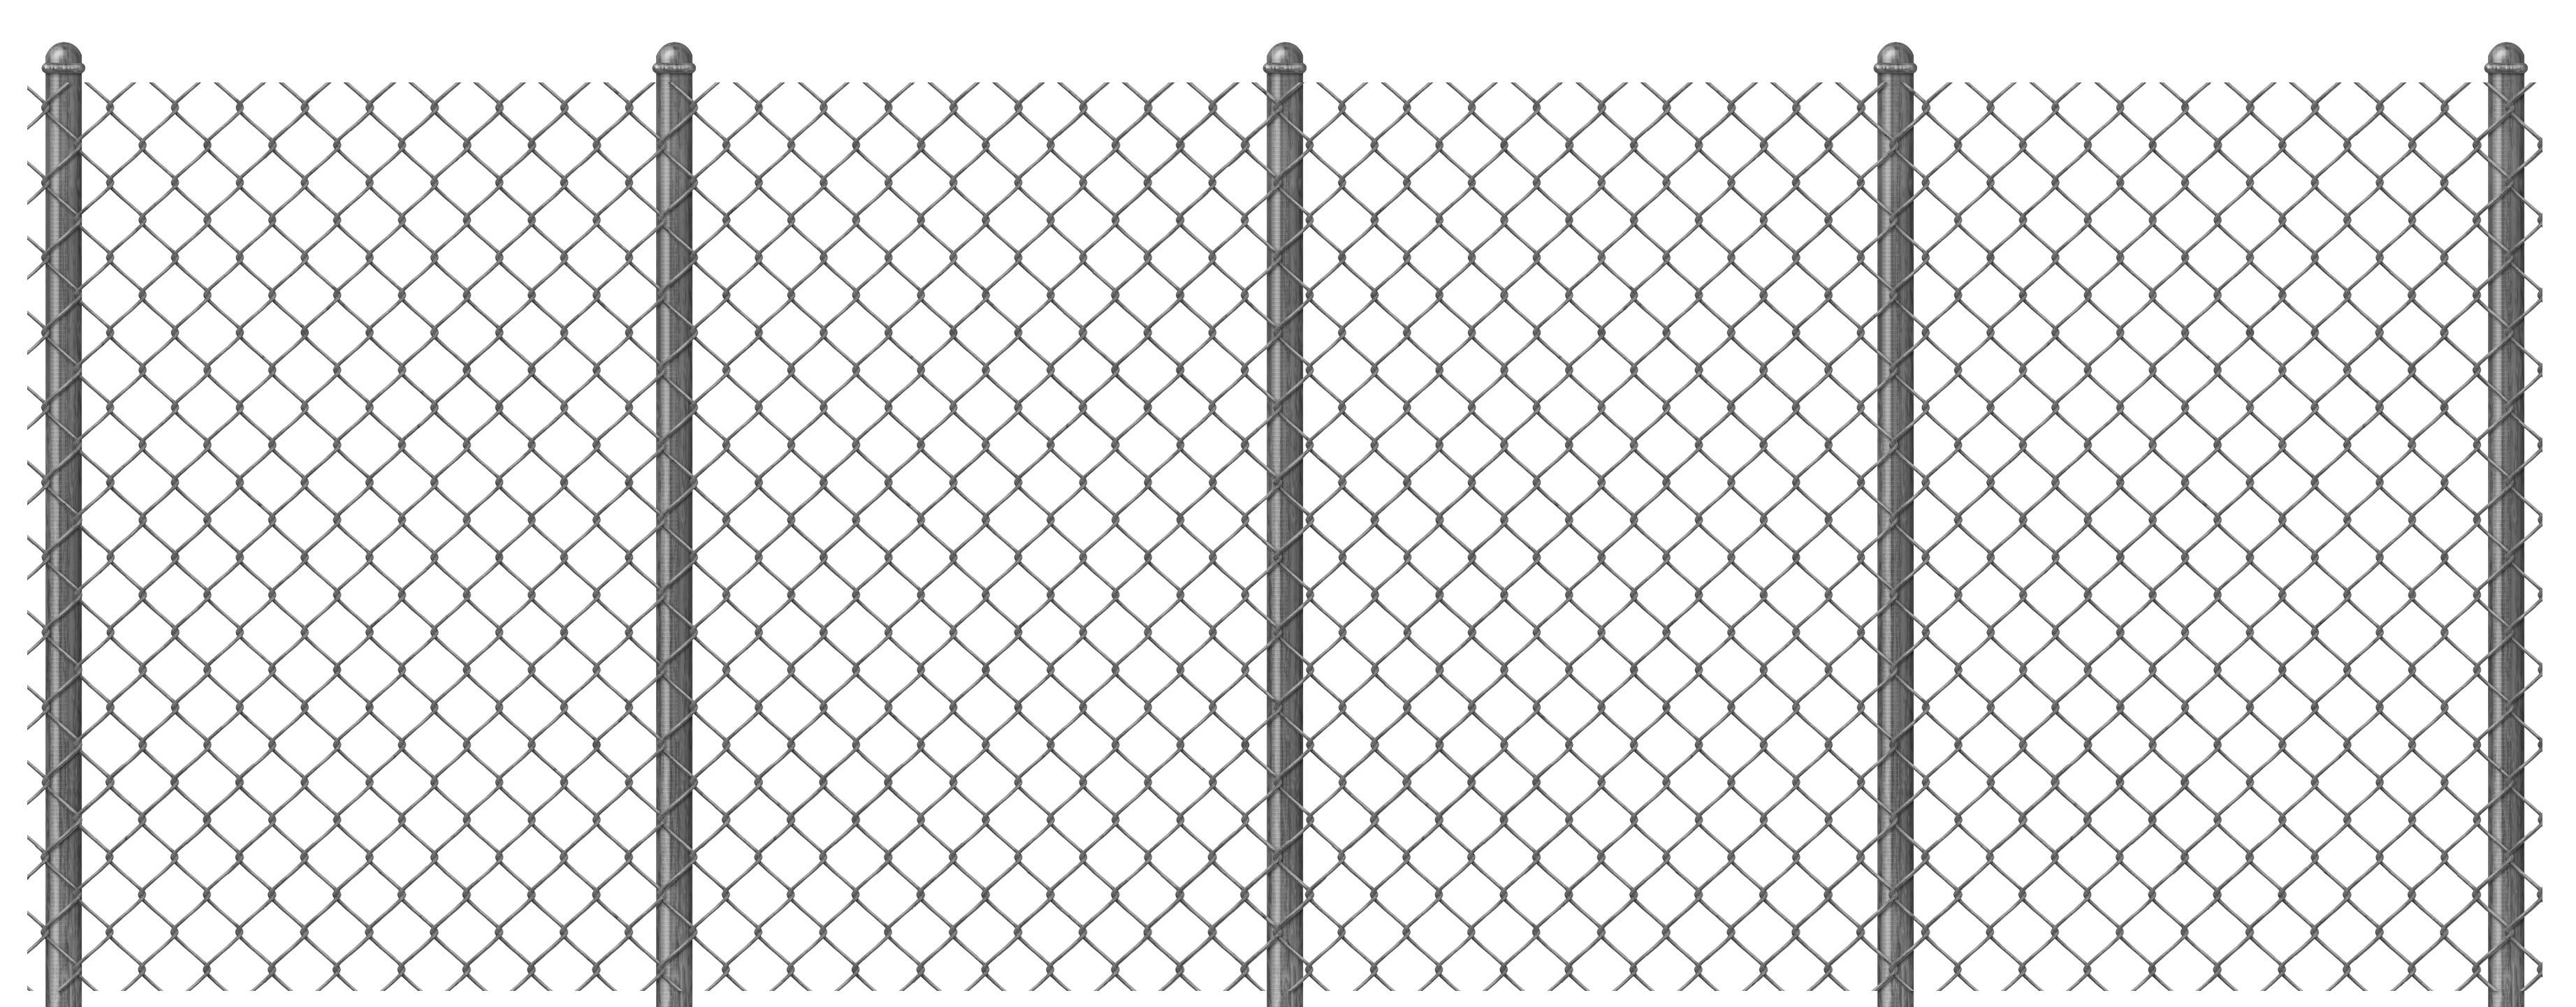 Metal Fence Png - Transparent Chain Link Fence PNG Clipart   Gallery Yopriceville ...